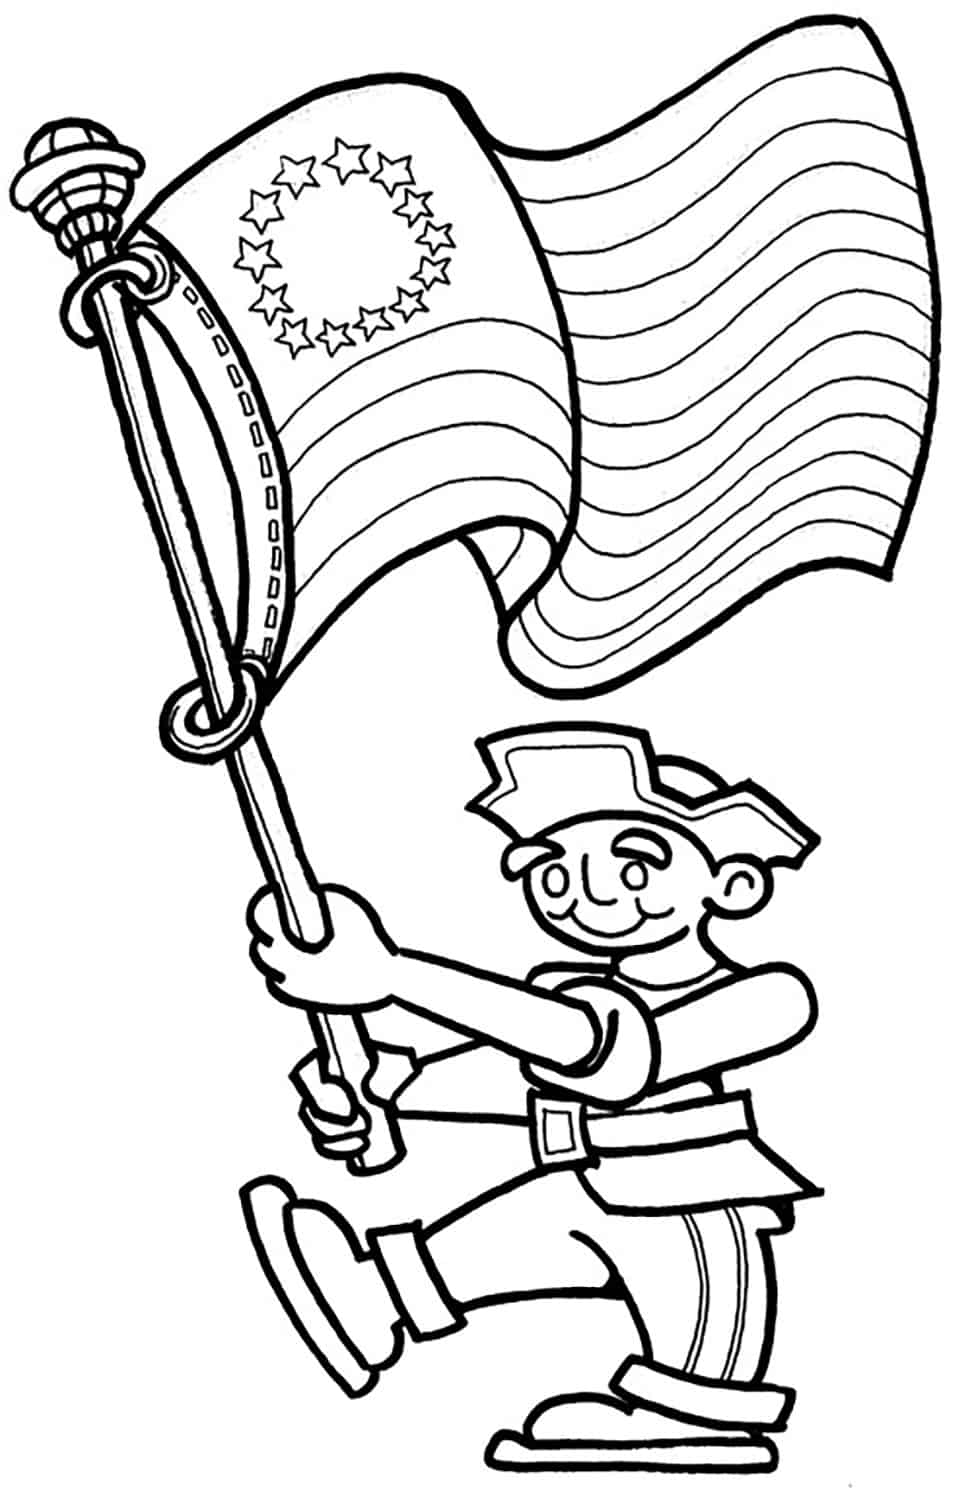 Free coloring pages for fourth of july - 4th Of July Coloring Flag